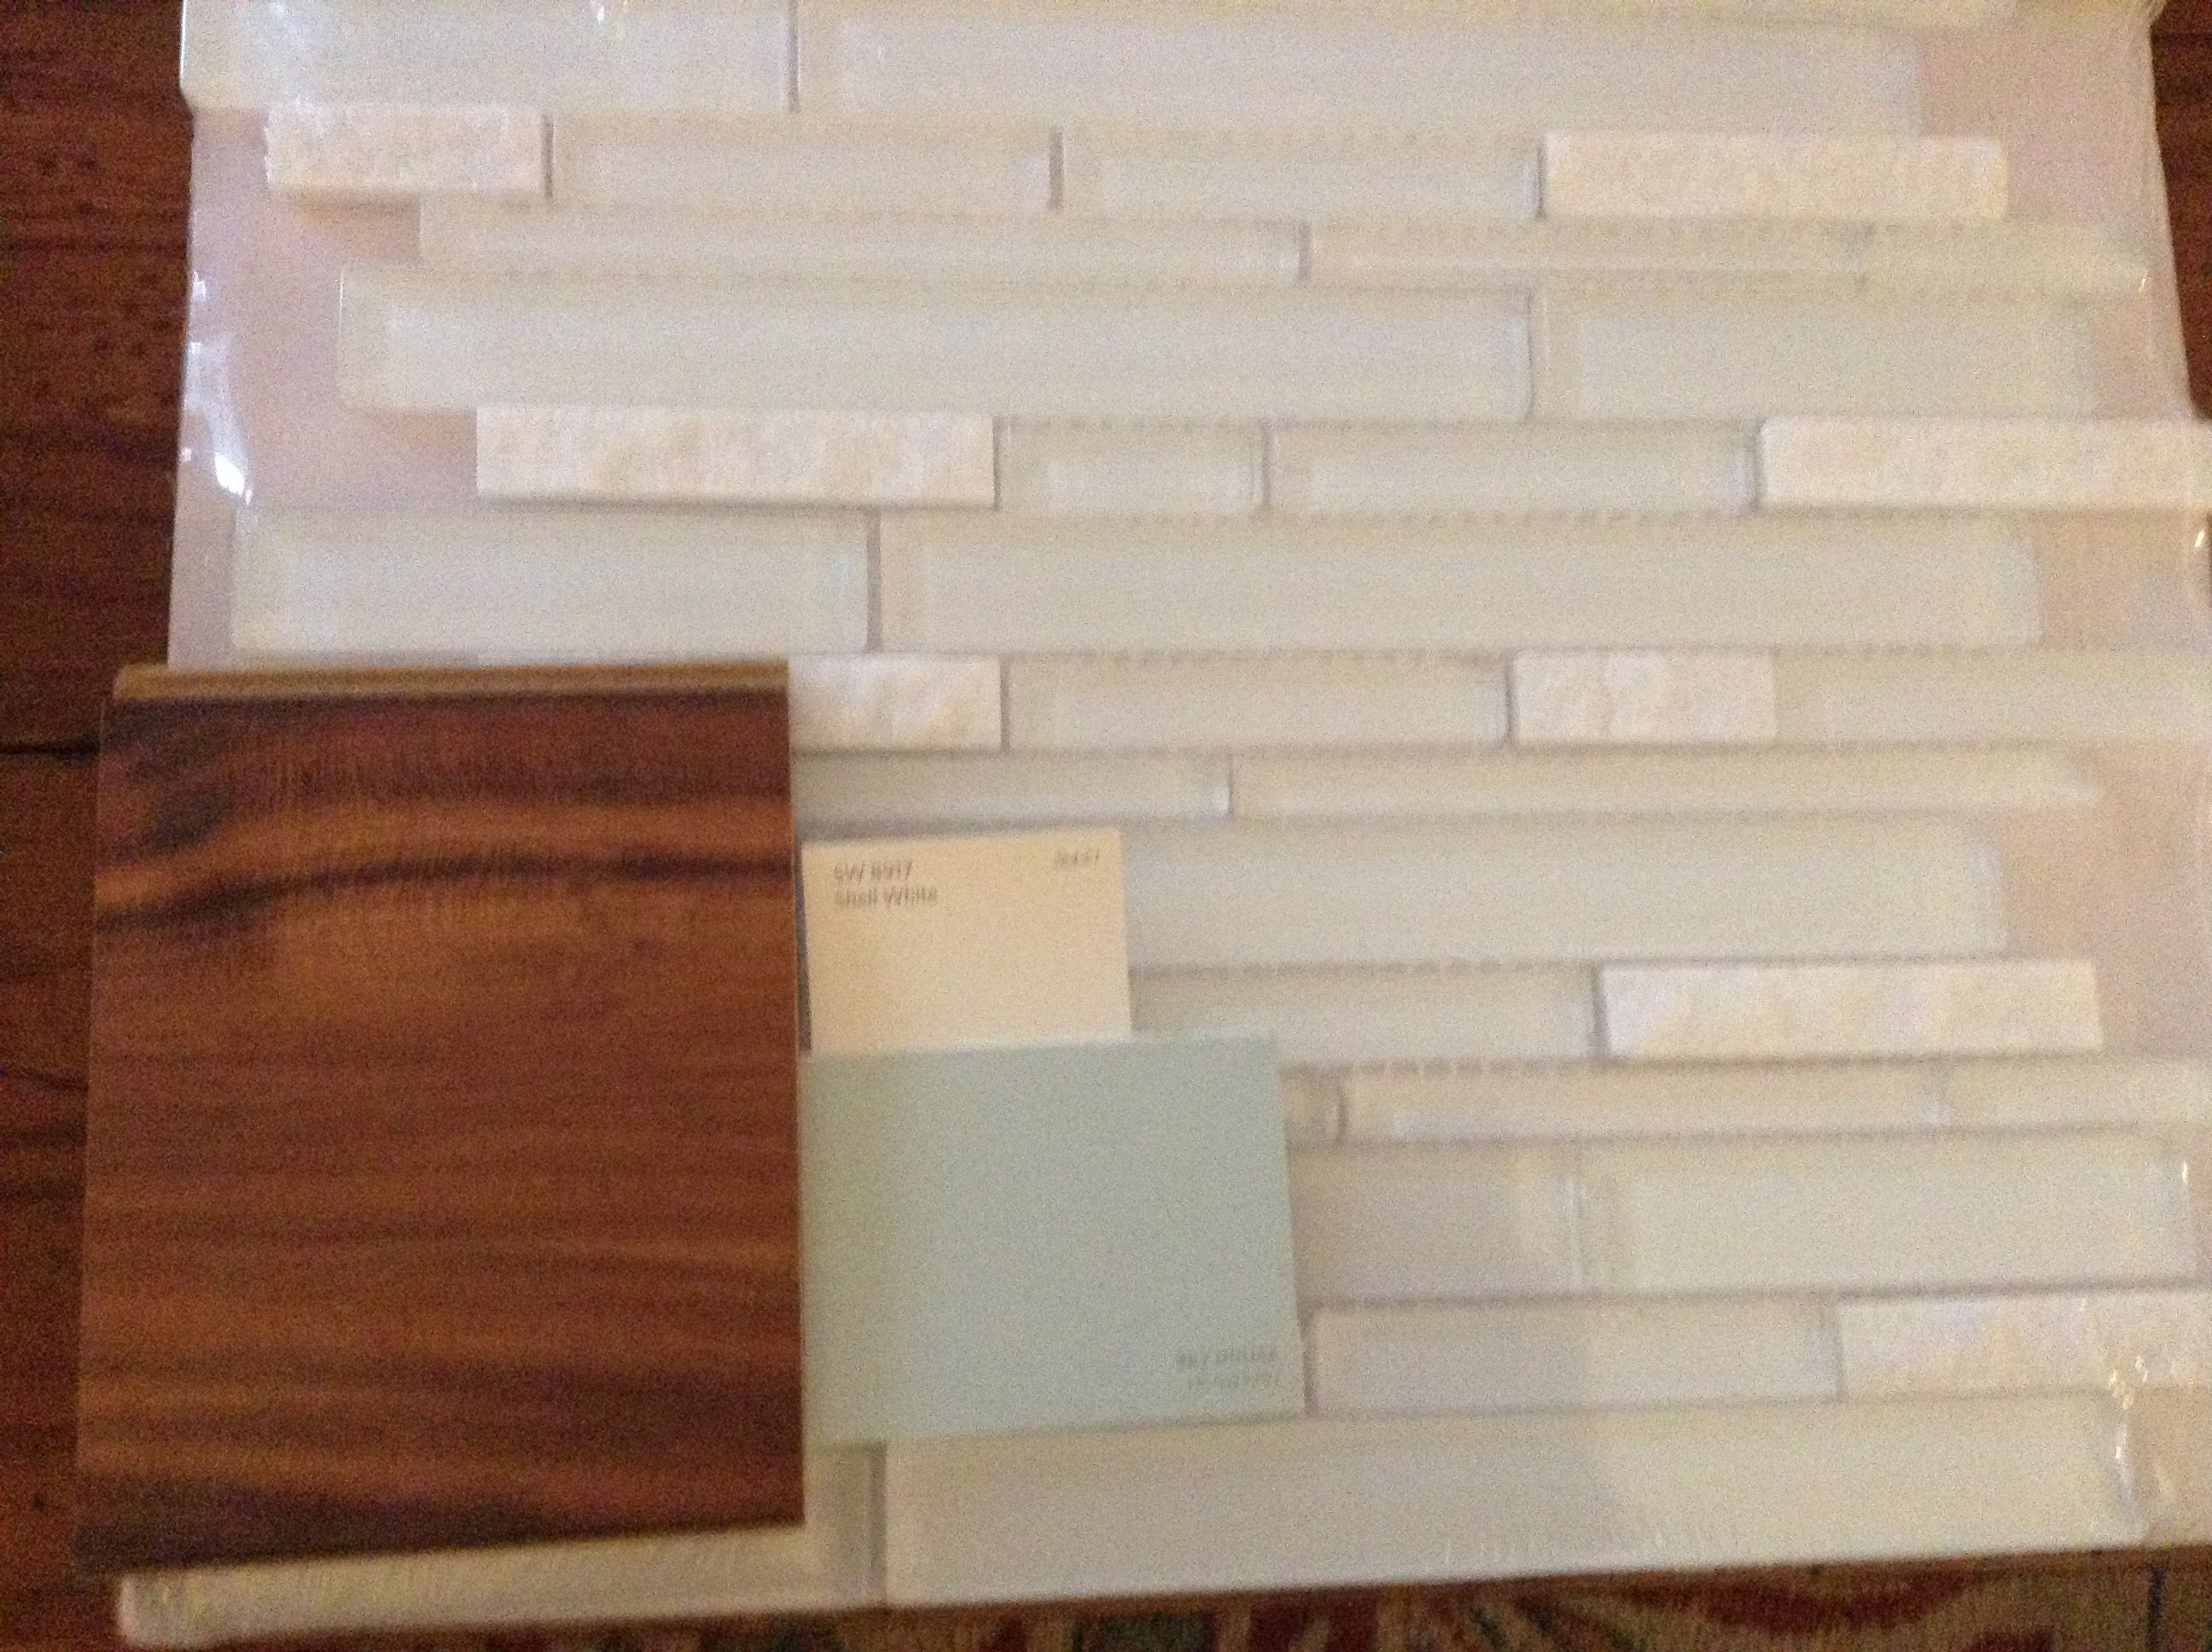 - Kitchen Backsplash: Lowes Exterior: Sky House By Lowes Trim